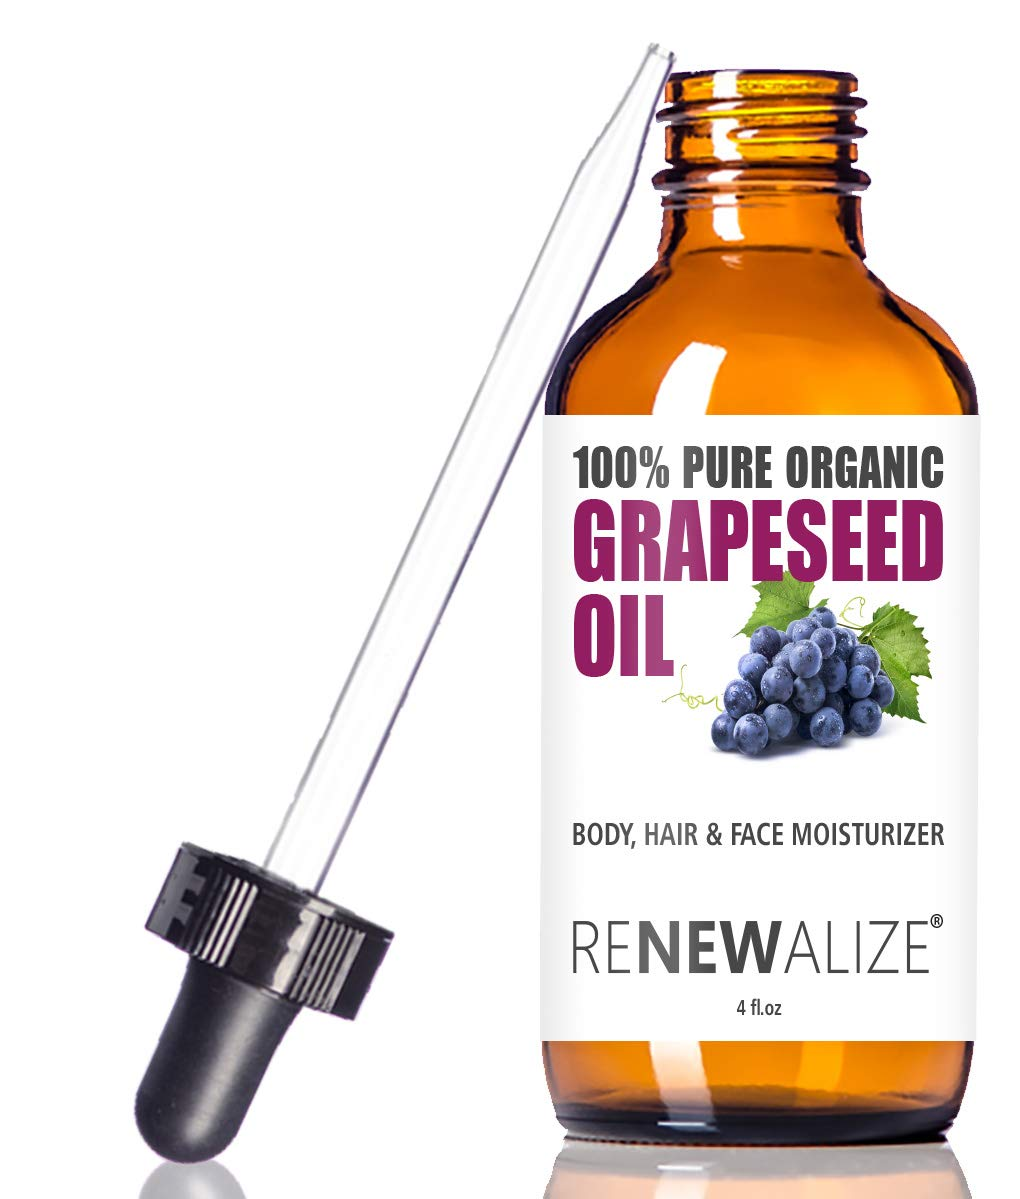 USDA Certified Organic GRAPESEED Oil Anti-Aging Moisturizer - Facial Cleanser in 4 oz Glass Bottle | Unrefined, Cold Pressed Grape Seed Oil | Essential to Reduce Skin Wrinkles and Stretch Marks